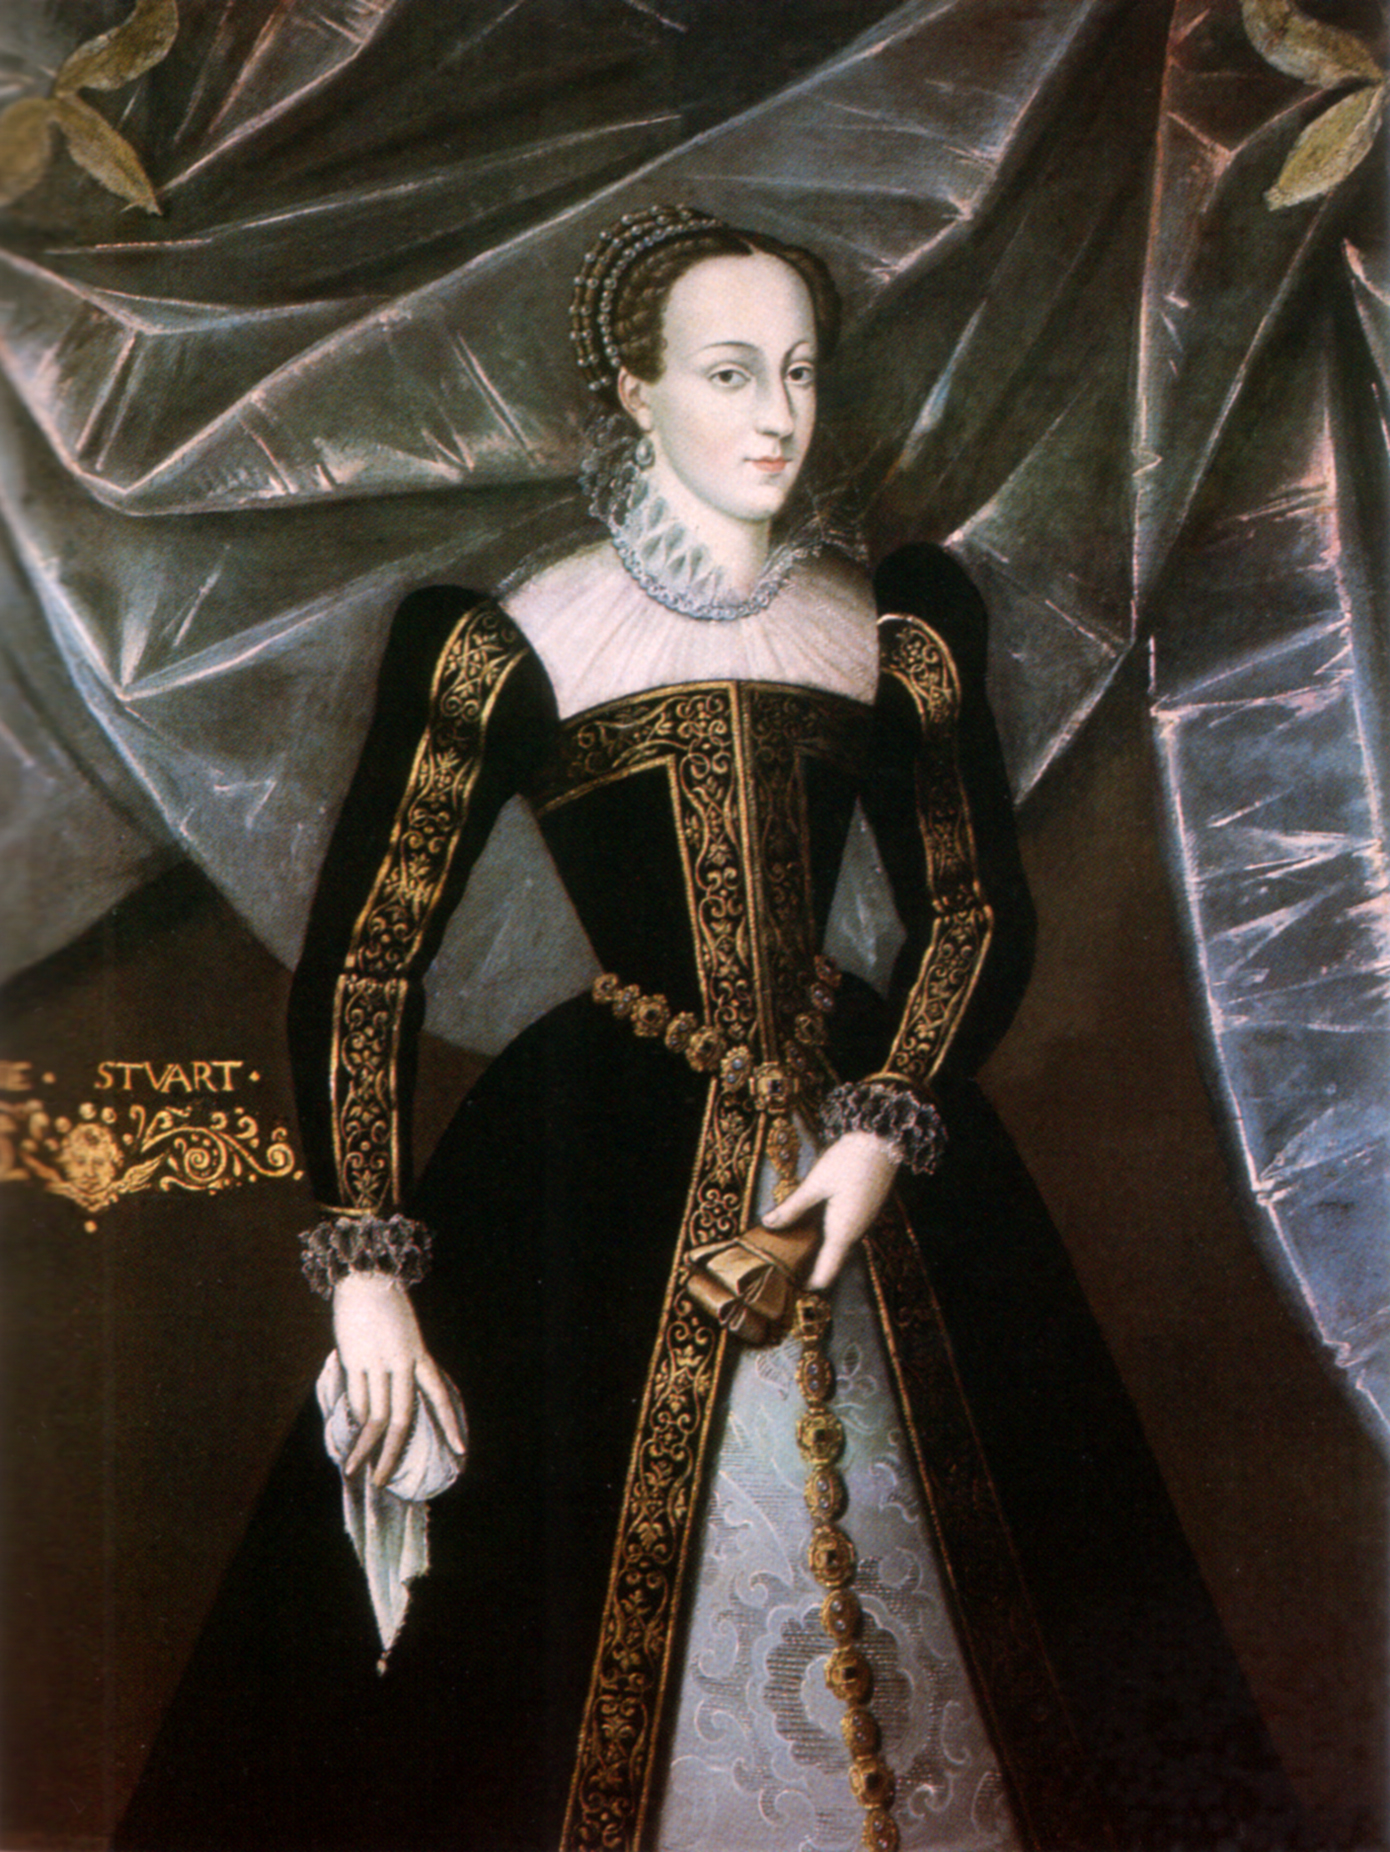 /800/600/https/upload.wikimedia.org/wikipedia/commons/1/1c/Mary_Queen_of_Scots_Blairs_Museum.jpg